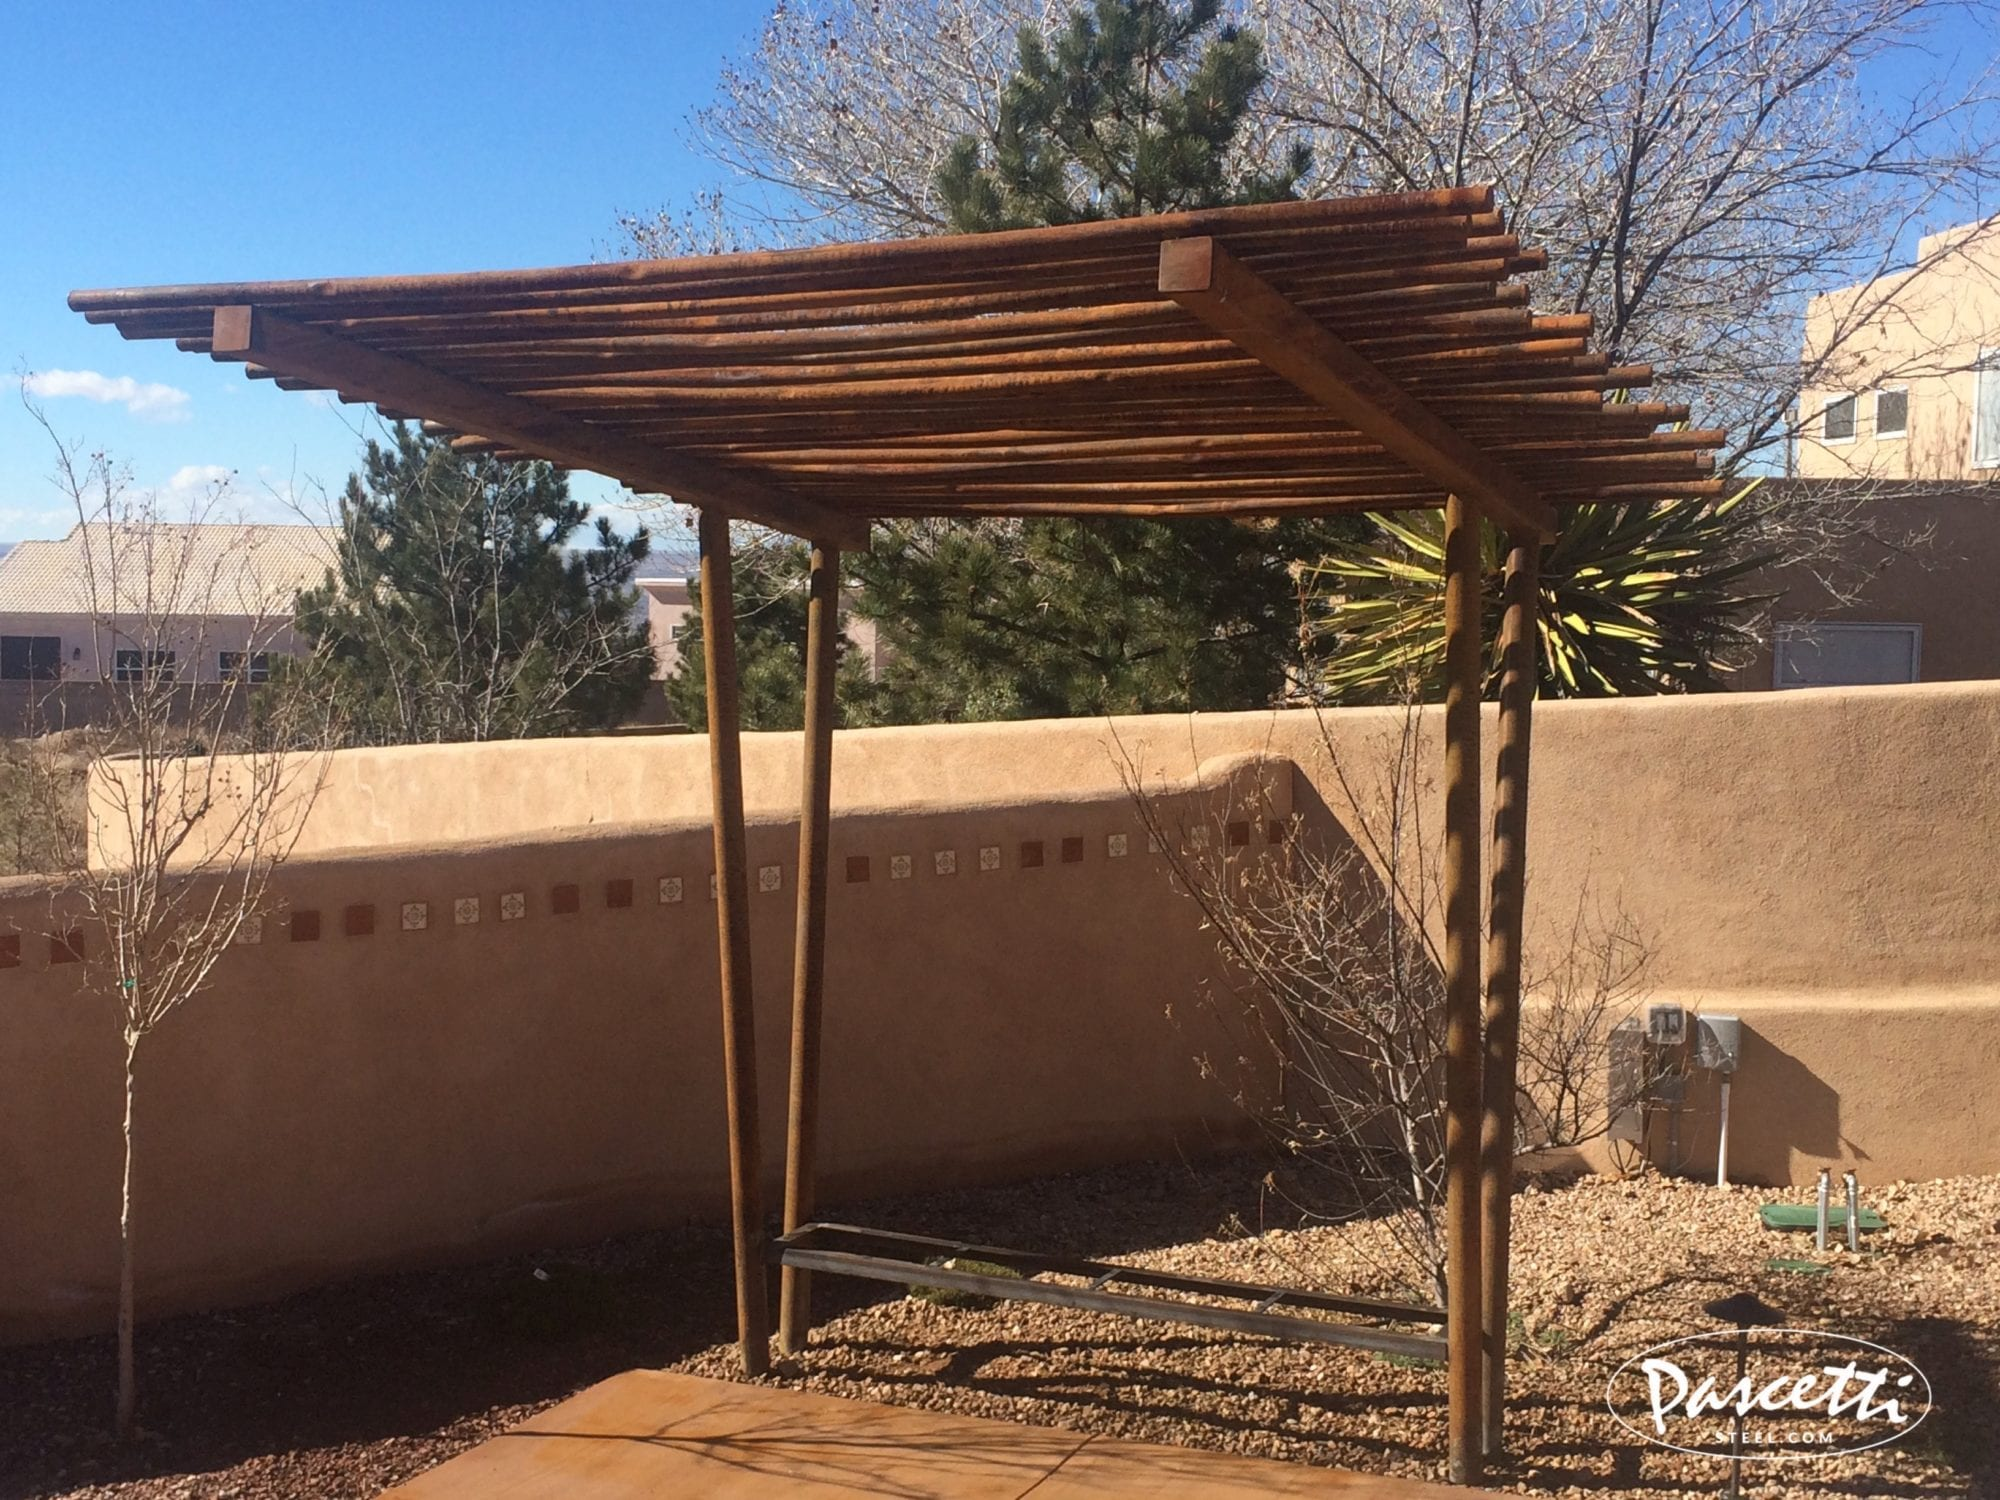 Twisted Pipe Shade Structure Pascetti Steel Design Inc